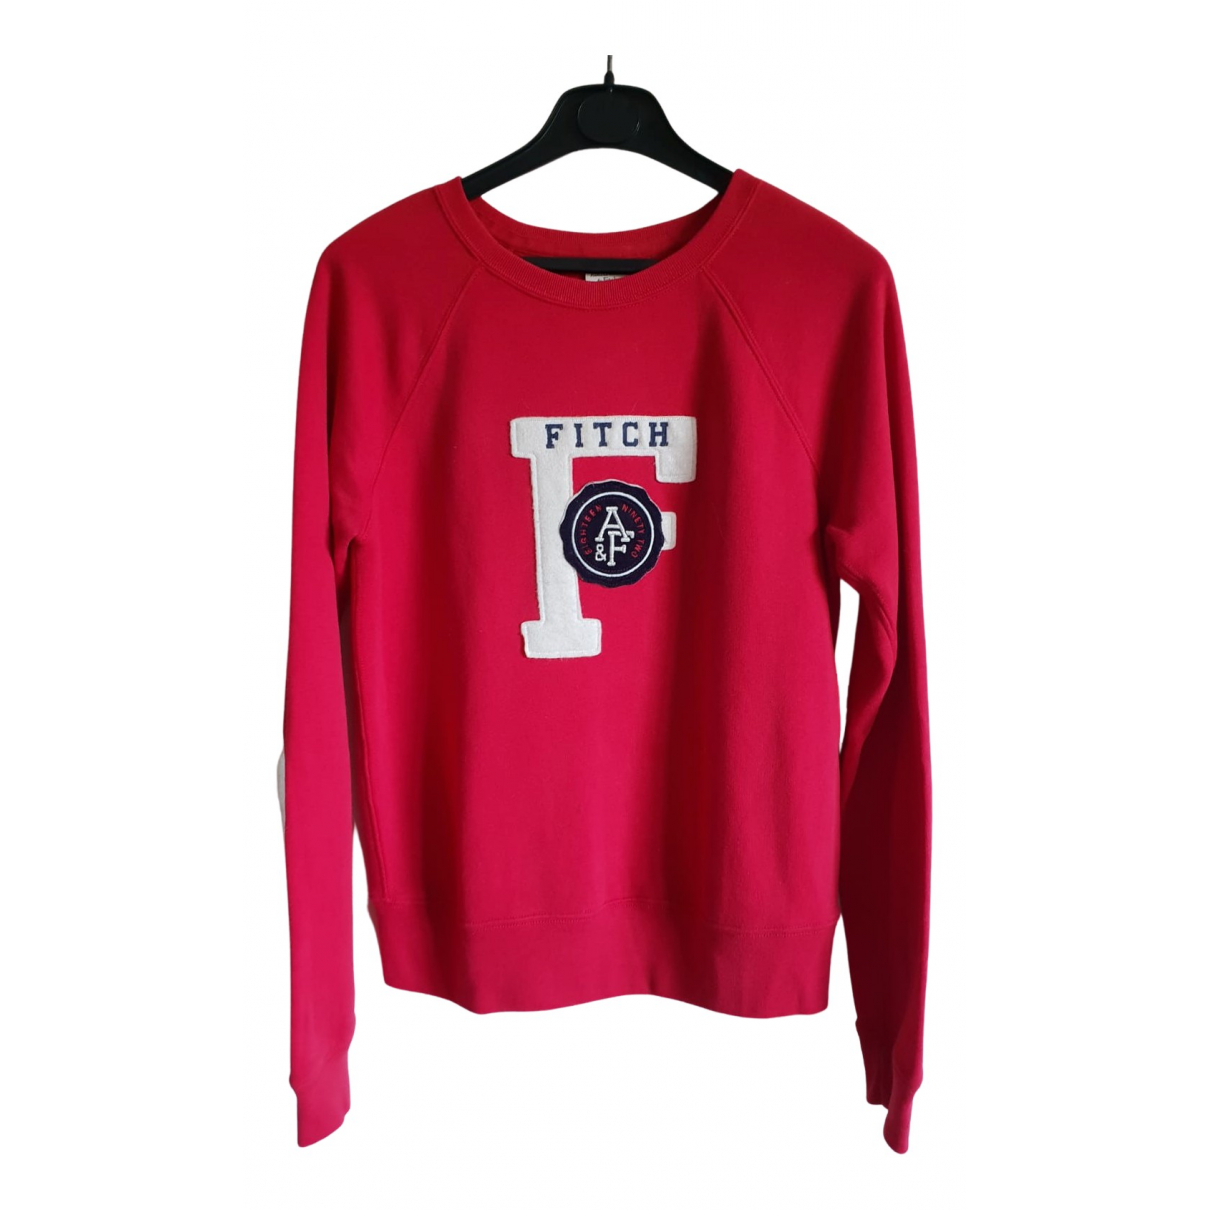 Abercrombie & Fitch N Red Cotton Knitwear for Women 36 FR